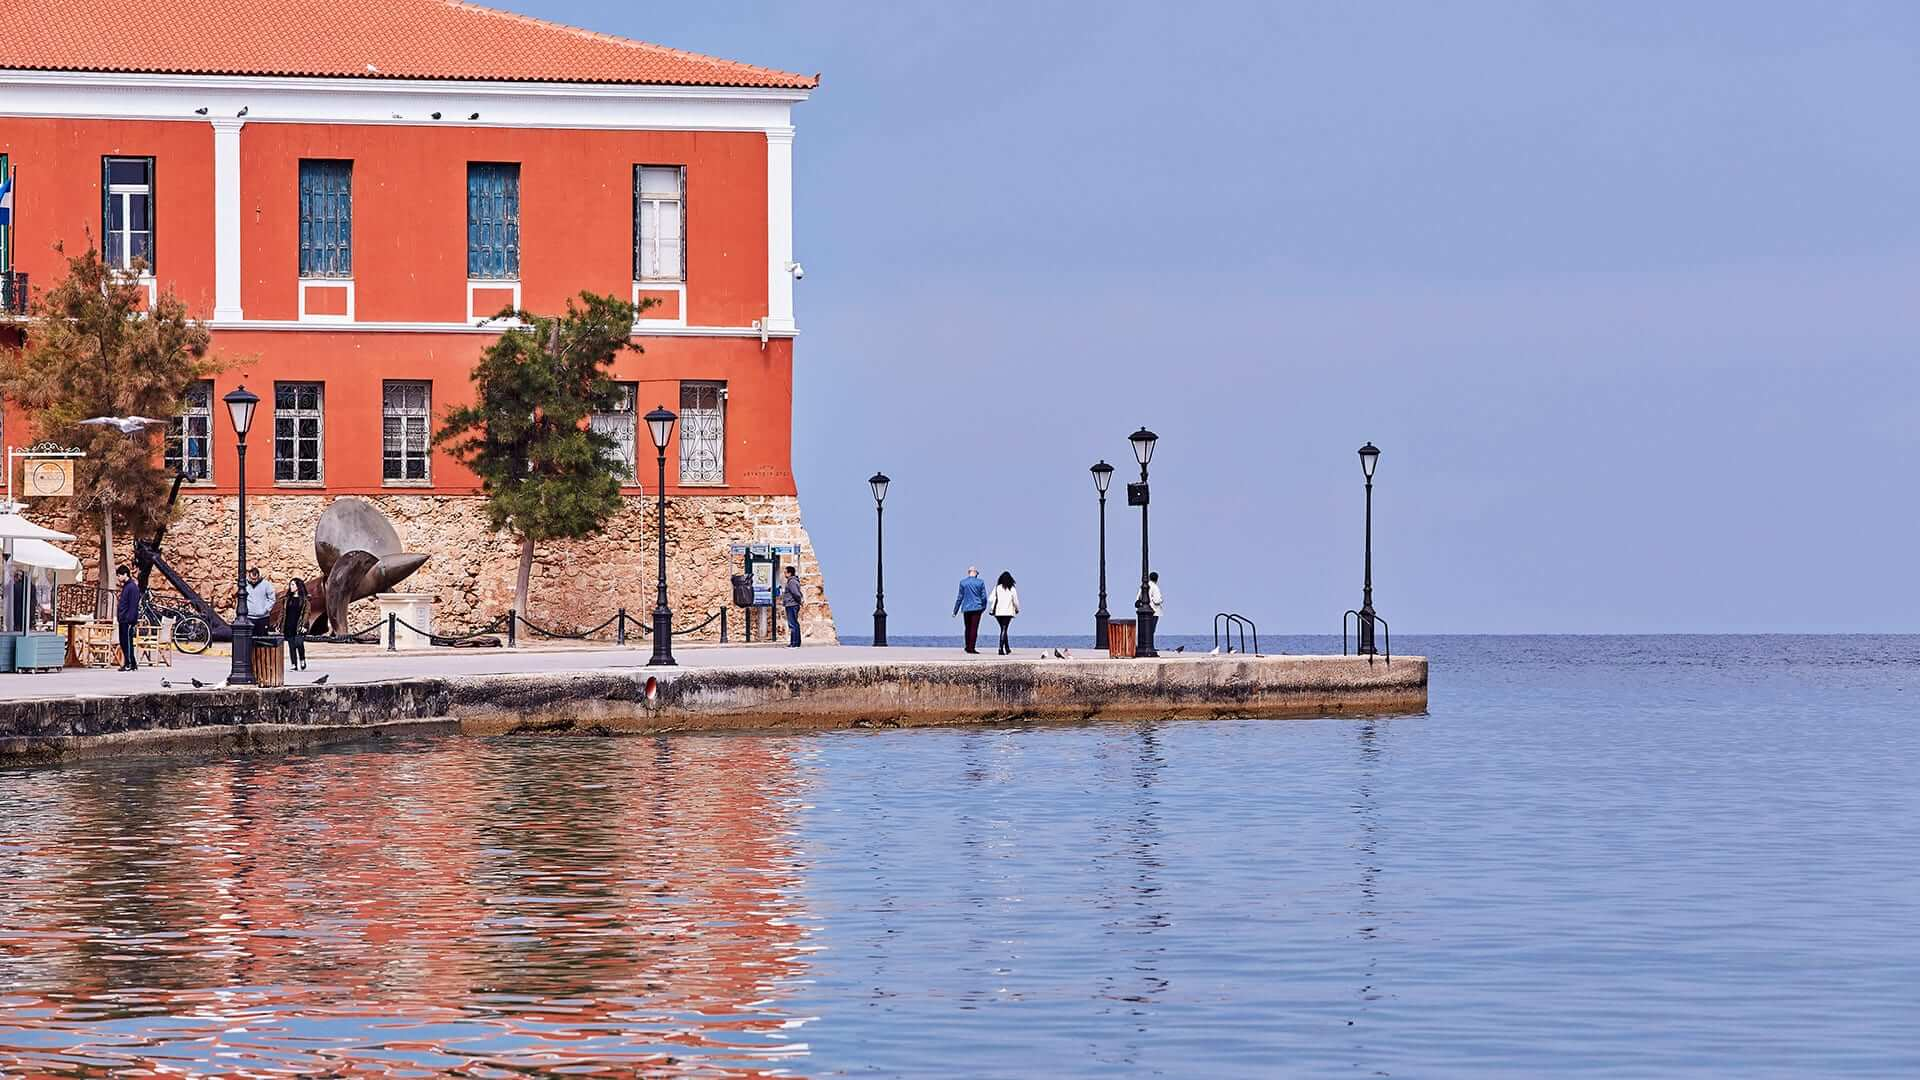 View of the Western side of Chania old town harbour, the location of the Domus Renier Boutique hotel